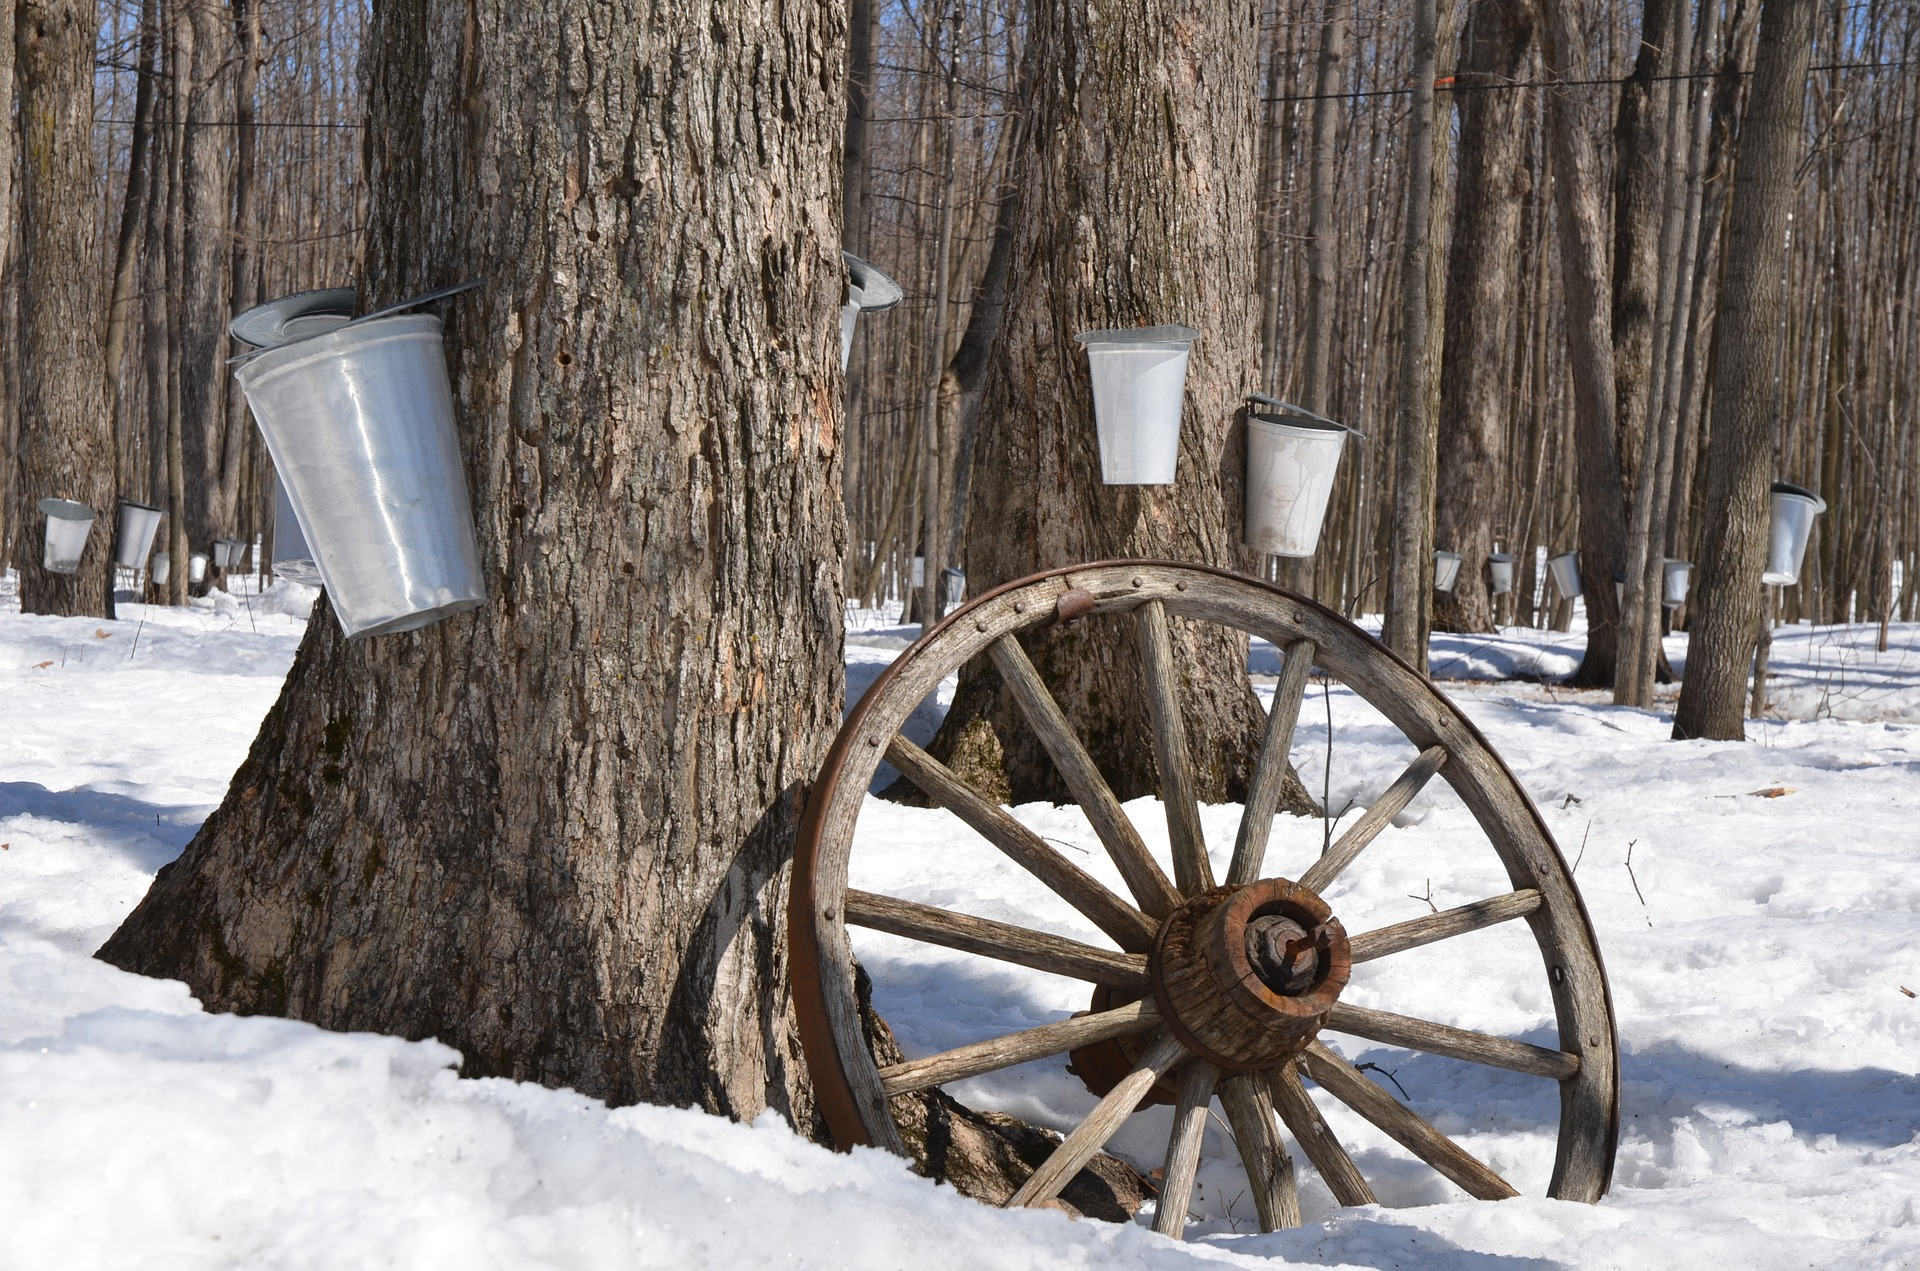 sap buckets on maple trees (diapicard/Pixabay)